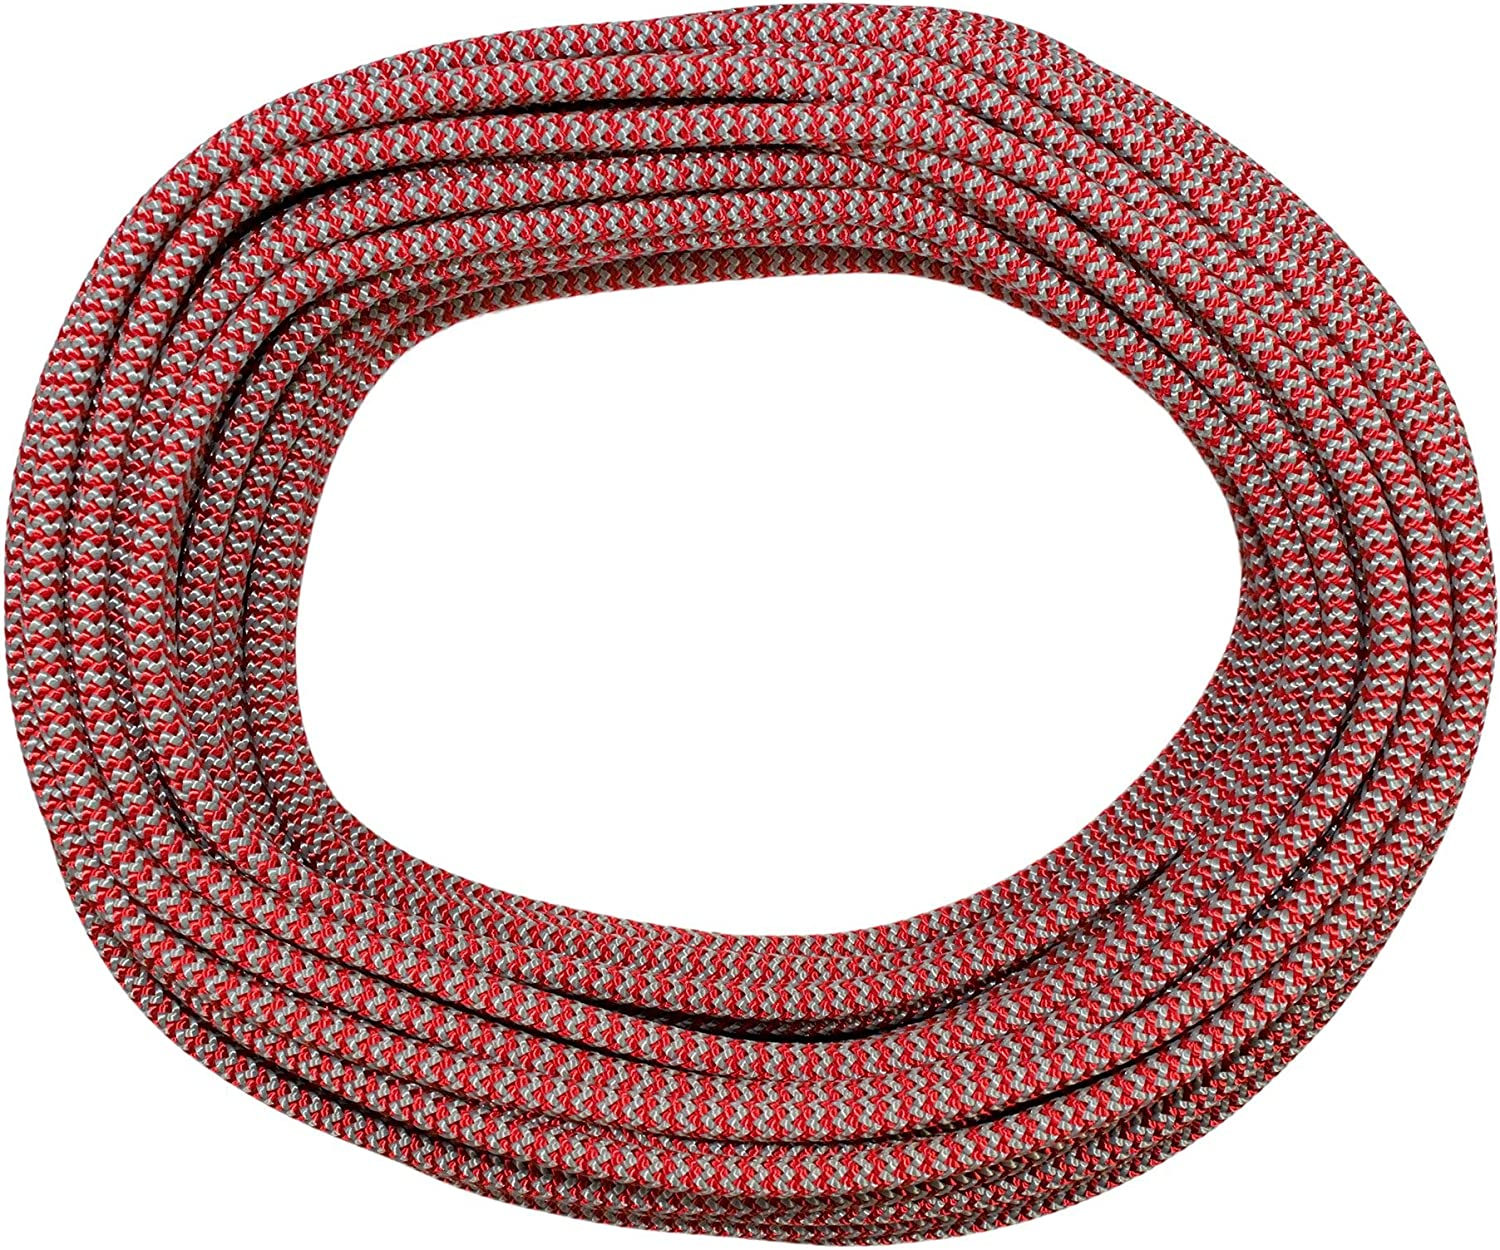 SGT KNOTS Utility Rope Tie Downs Solid Braid Red Marlow All-Purpose Rope for Outdoor Leisure Marine General Purpose